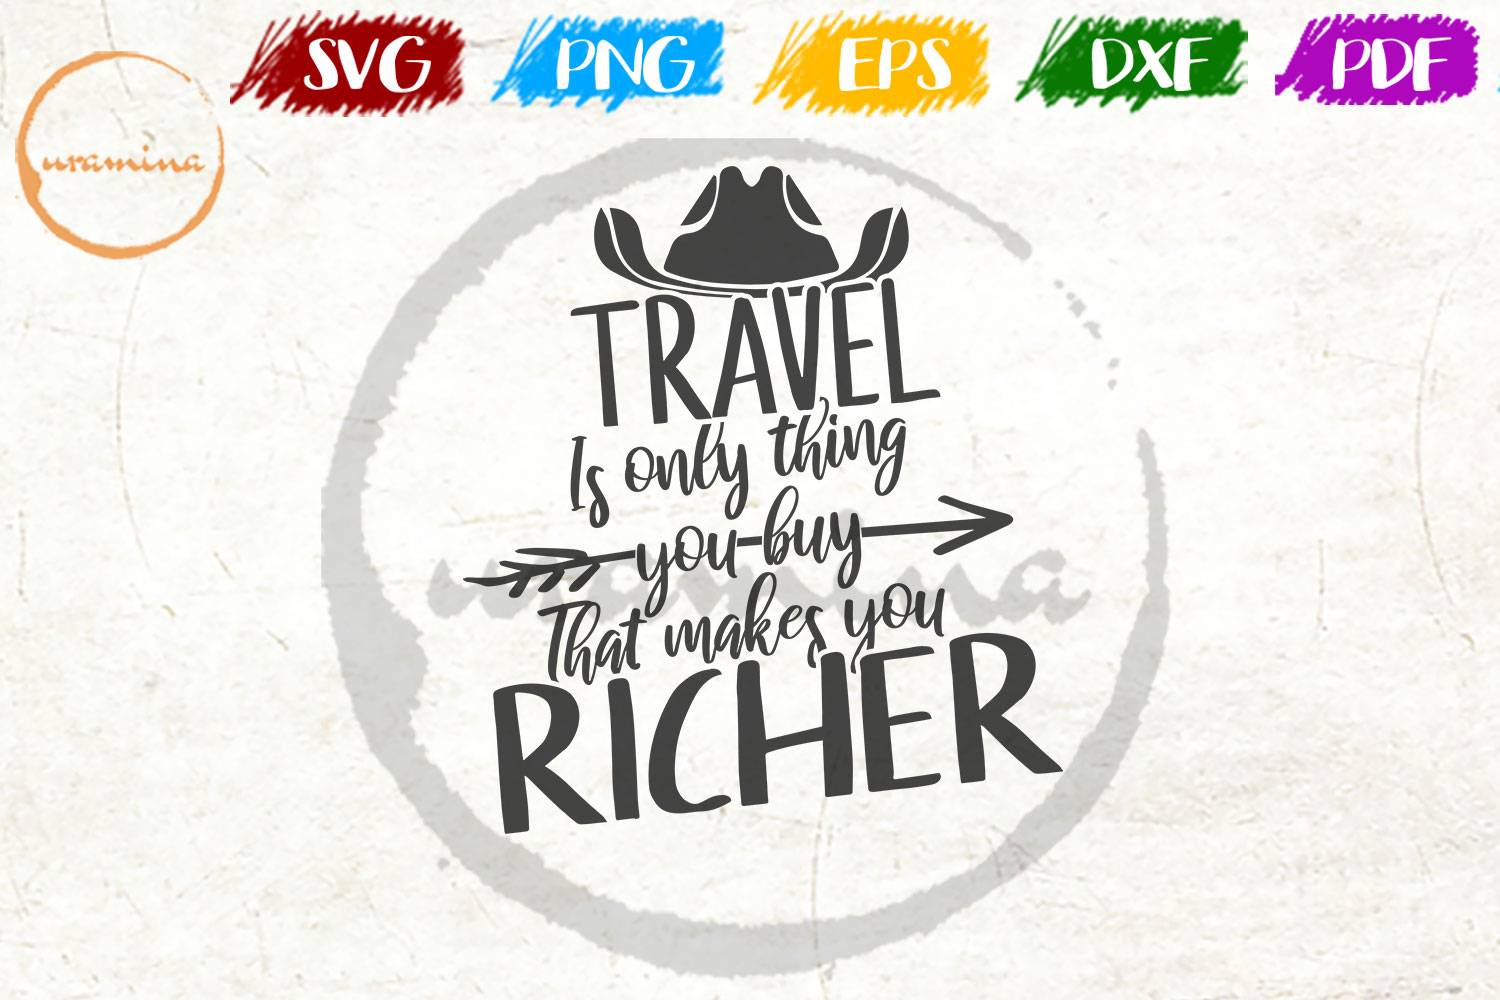 Download Free Travel Is Only Thing You Buy Graphic By Uramina Creative Fabrica for Cricut Explore, Silhouette and other cutting machines.